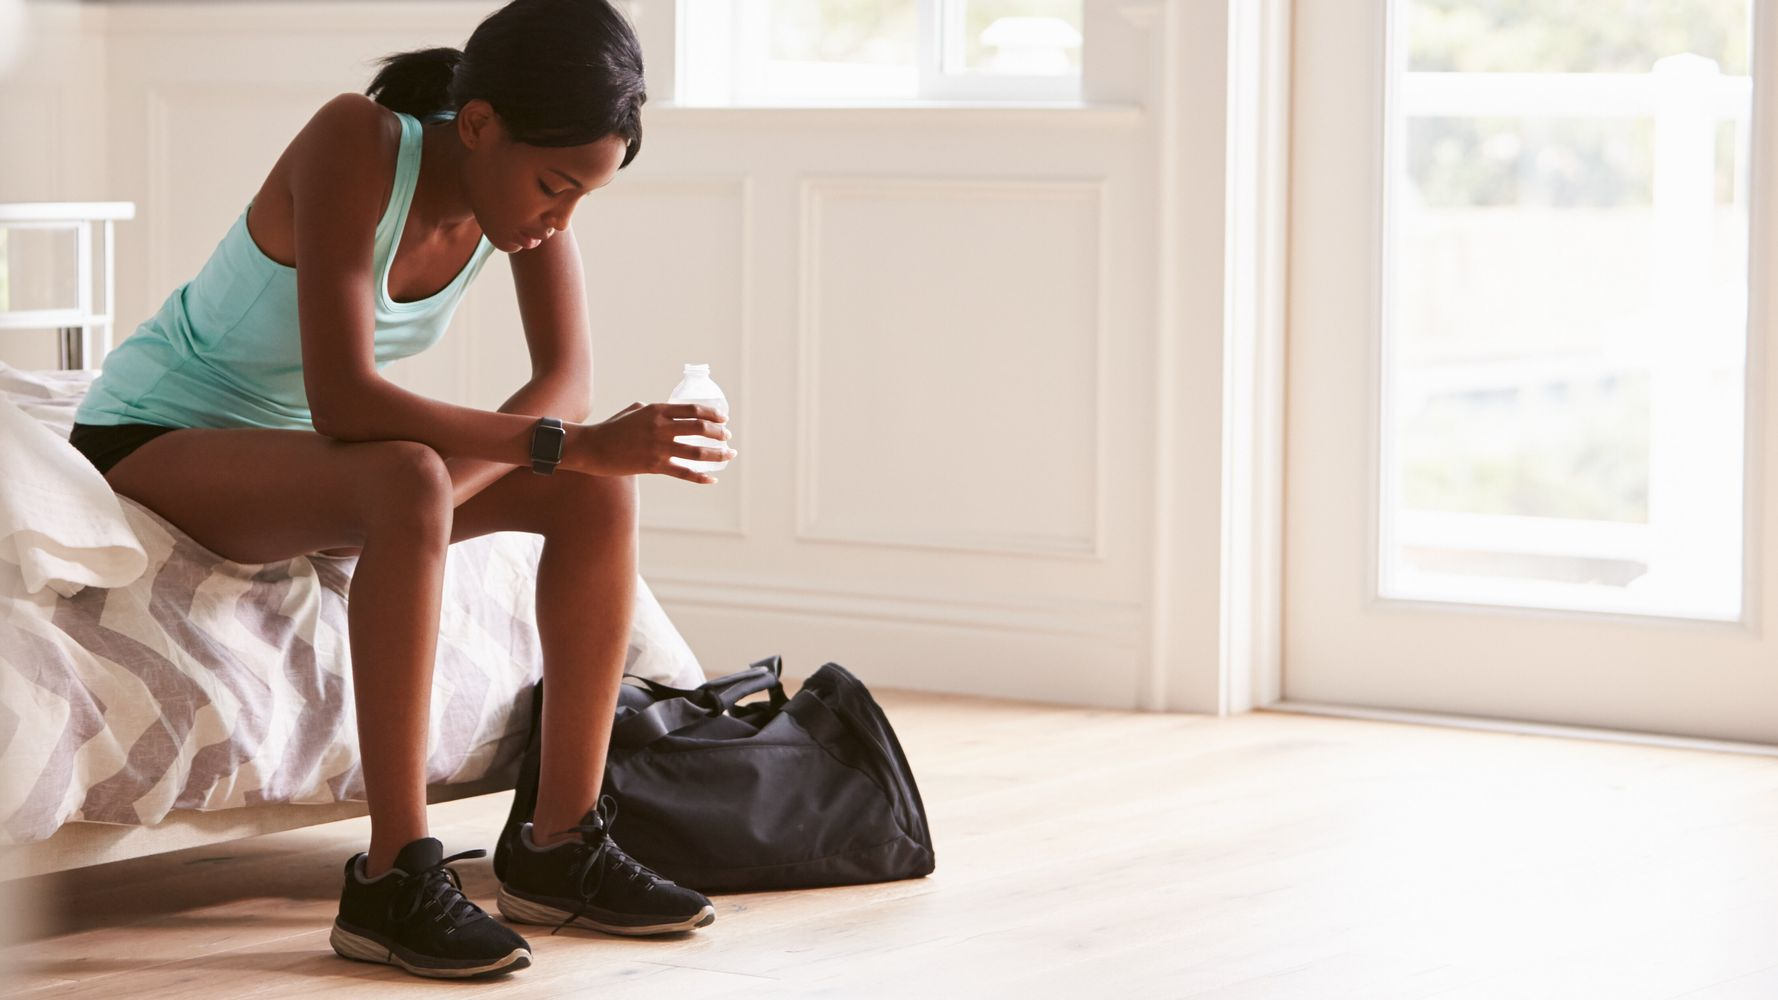 The Problem With Suggesting Exercise For Depression